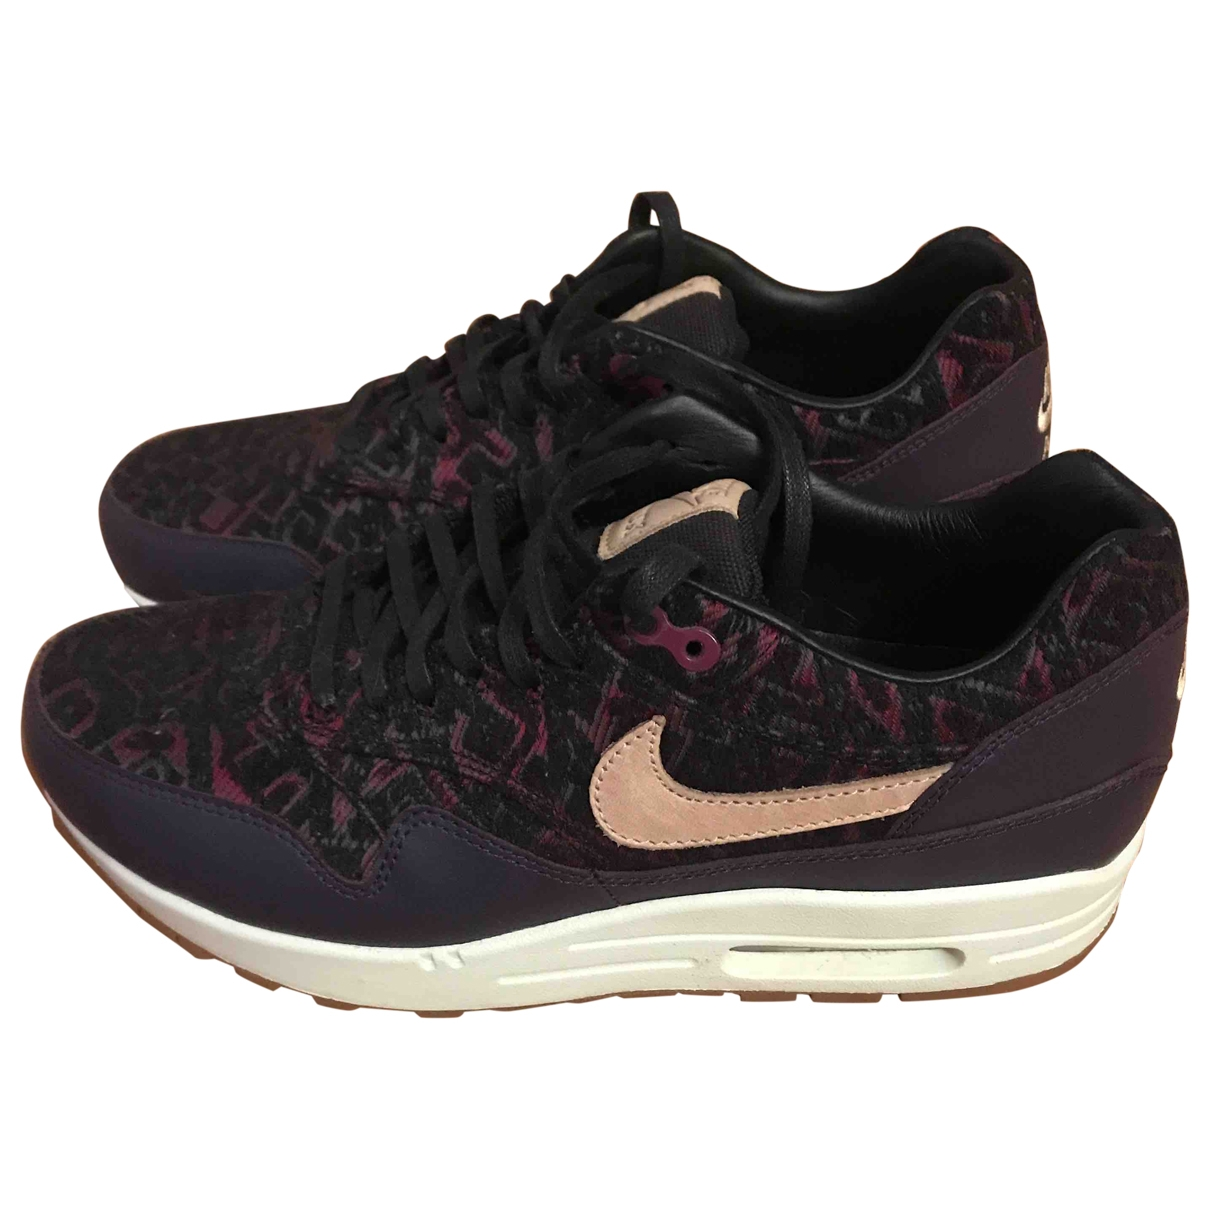 Nike Air Max 1 Purple Leather Trainers for Women 38 EU